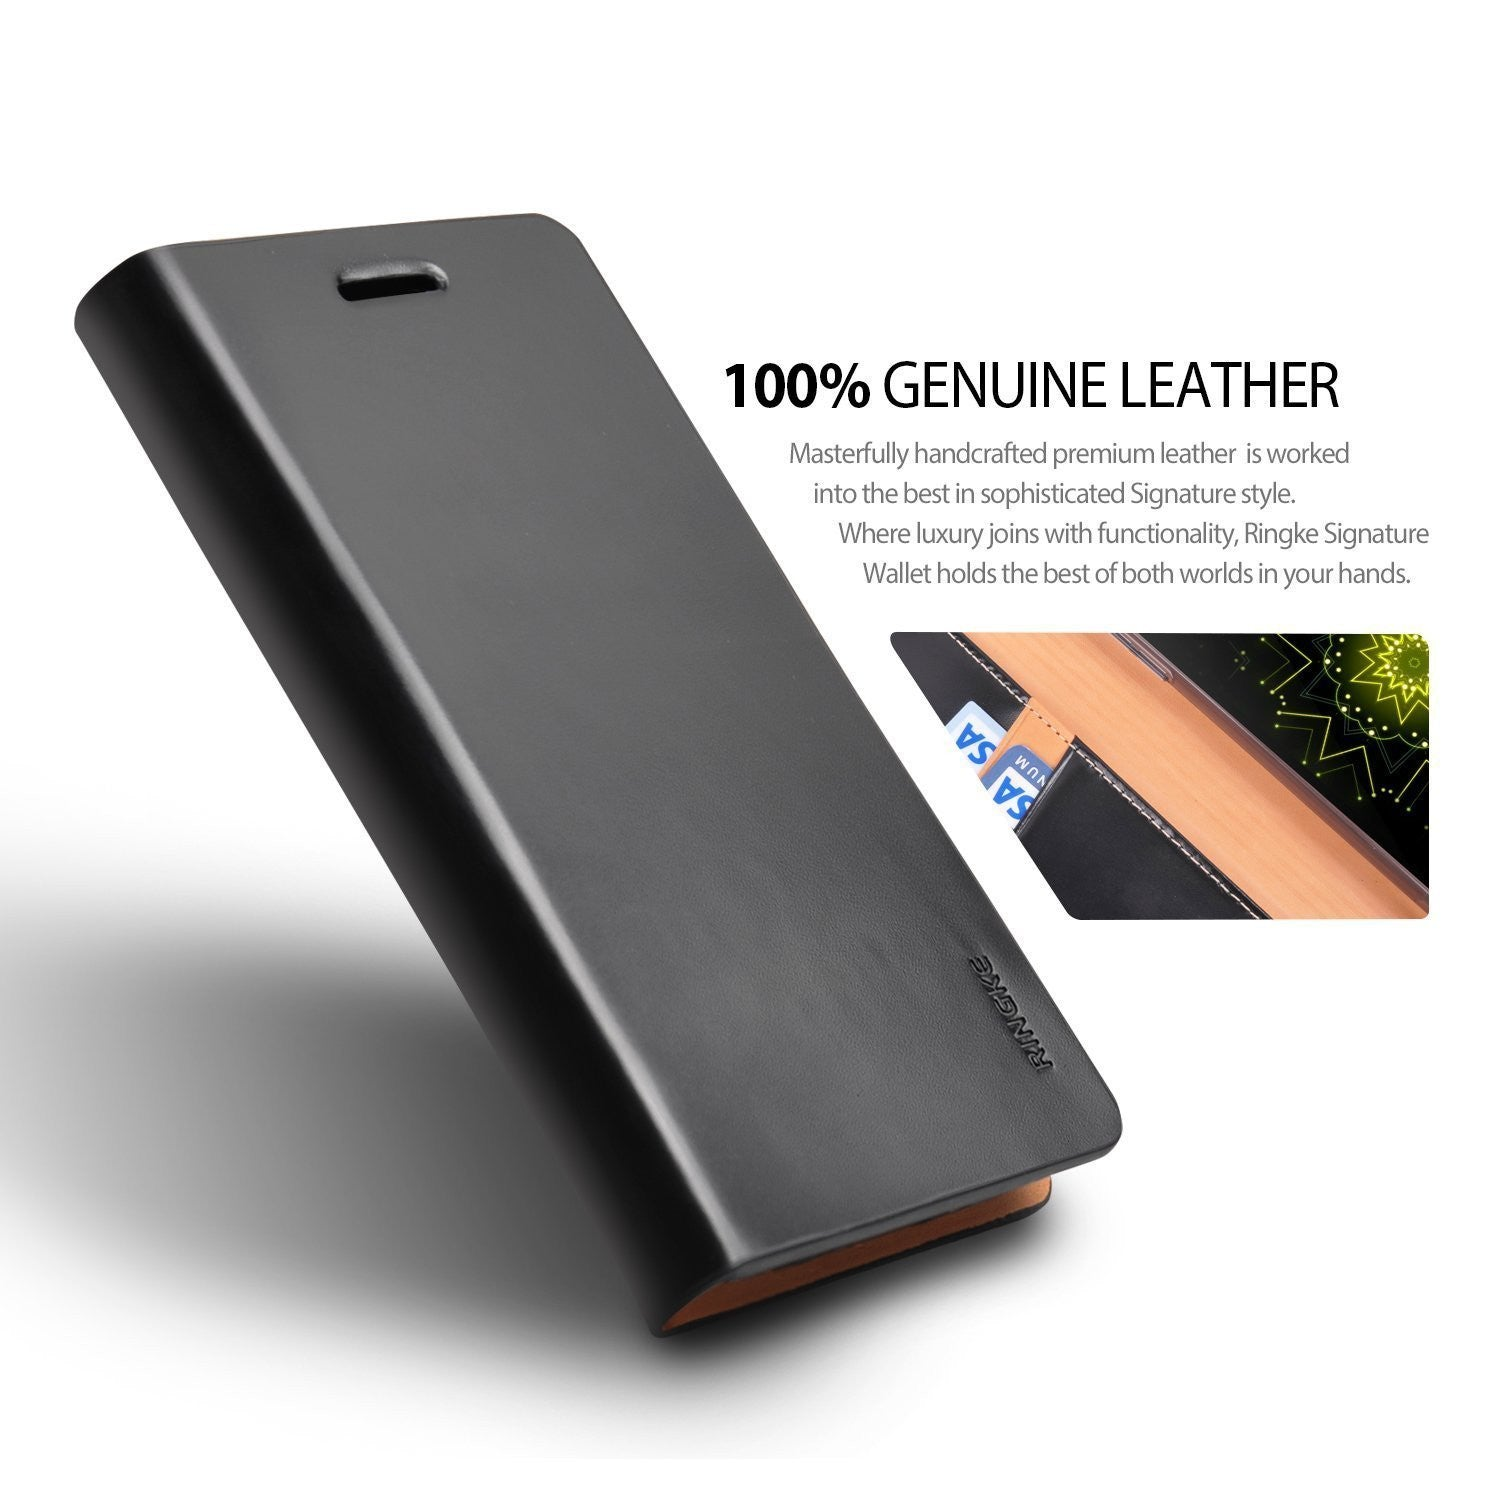 100% genuine leather